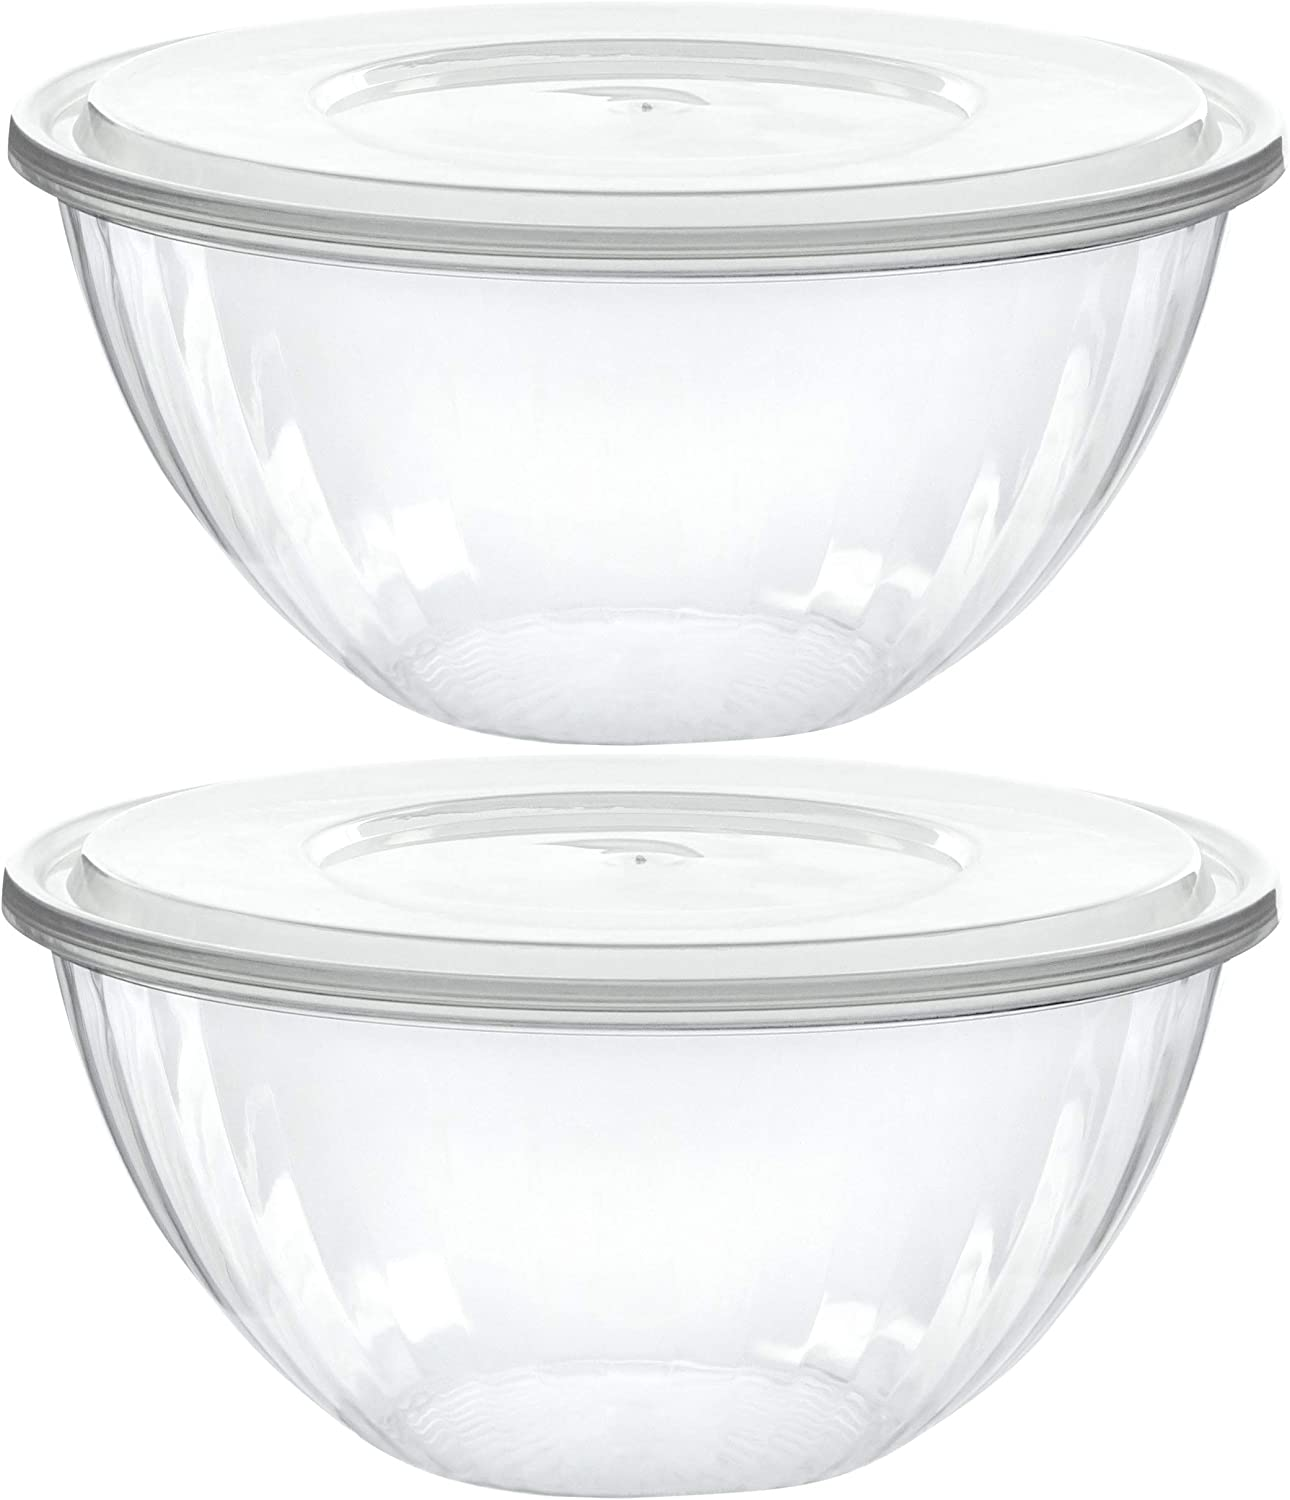 Plasticpro Disposable 48 Ounce Round Crystal Clear Plastic Serving Bowls With Lids, Party Snack or Salad Bowl, Chip Bowls, Snack Bowls, Candy Dish, Salad Container Pack of 2